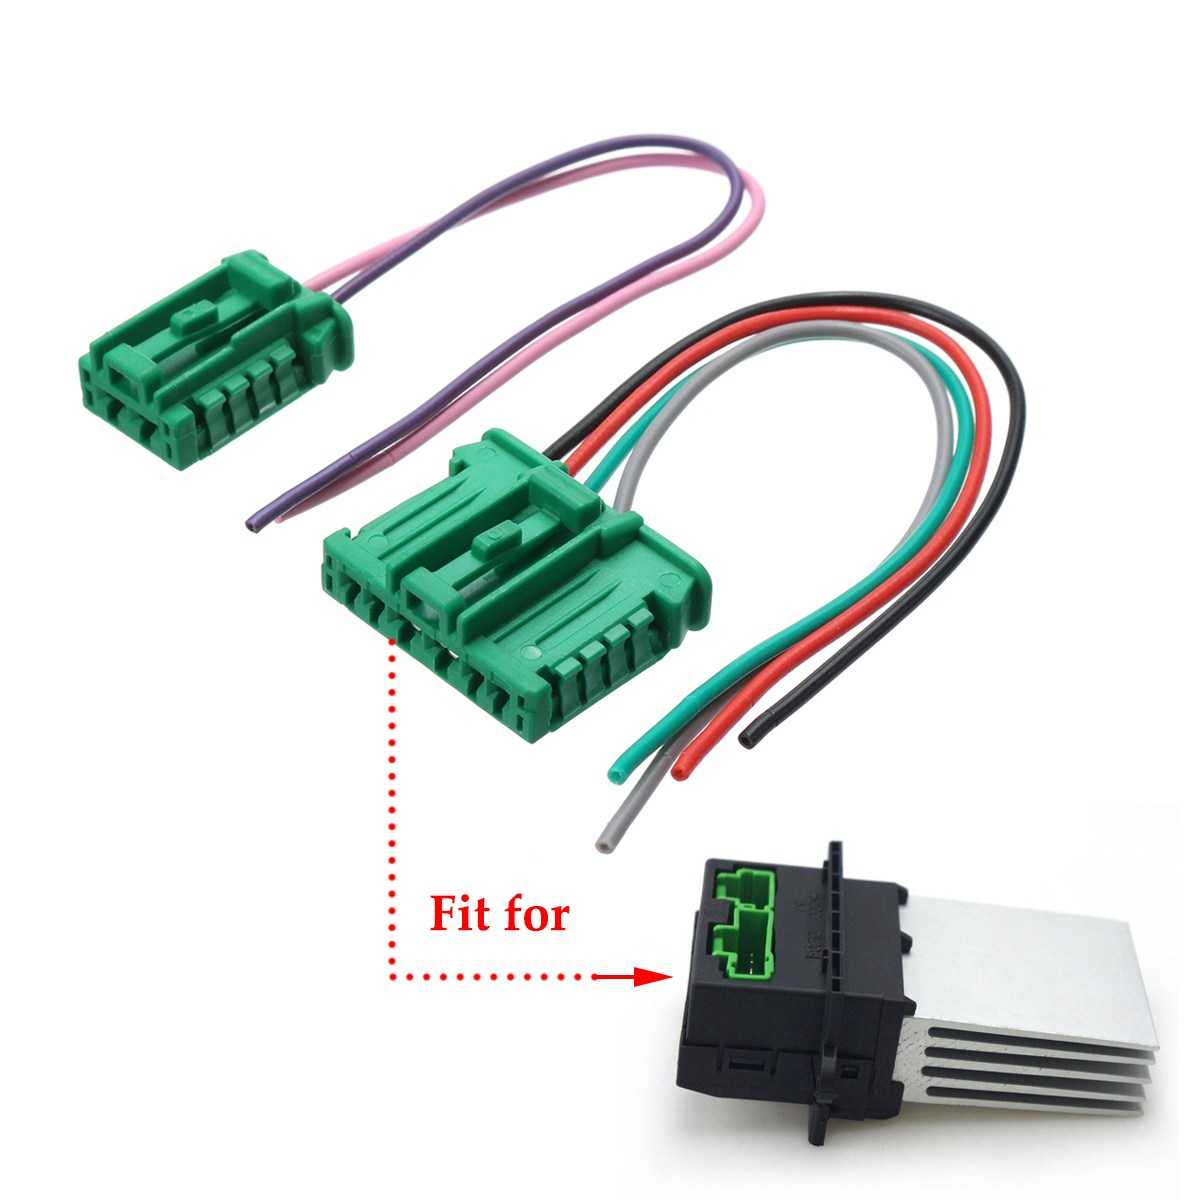 Kroak 1pcs Car Heater Blower Motor Resistor Wiring Loom Harness Peugeot Boxer 27150ed70b For Citroen Renault Megane